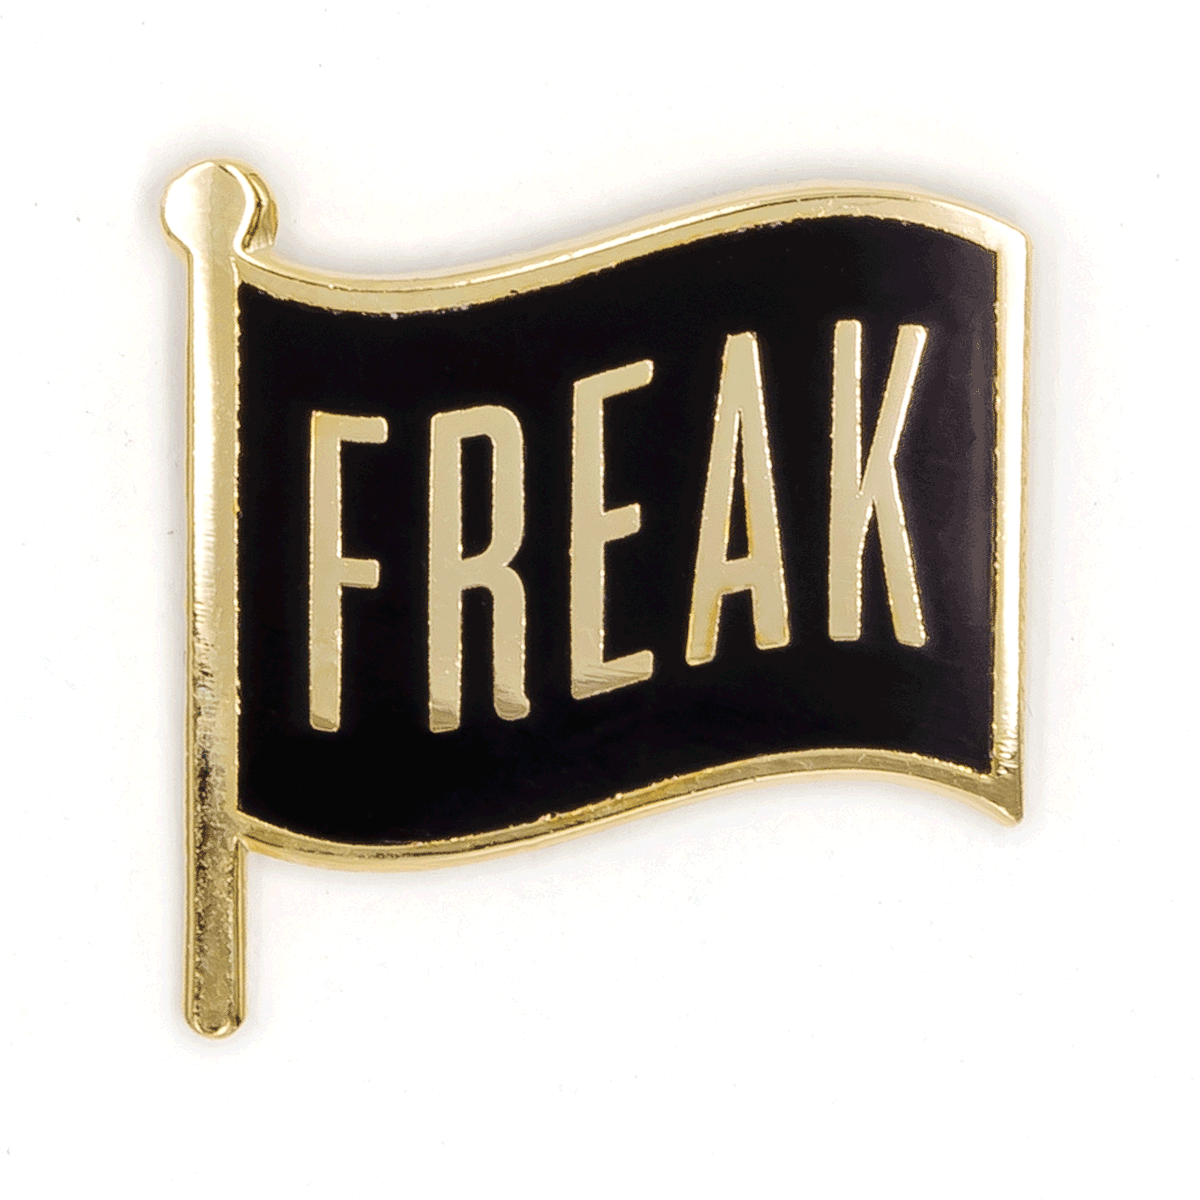 Enamel Pin - Freak Flag, These Are Things, Handcrafted Home Goods and Gifts